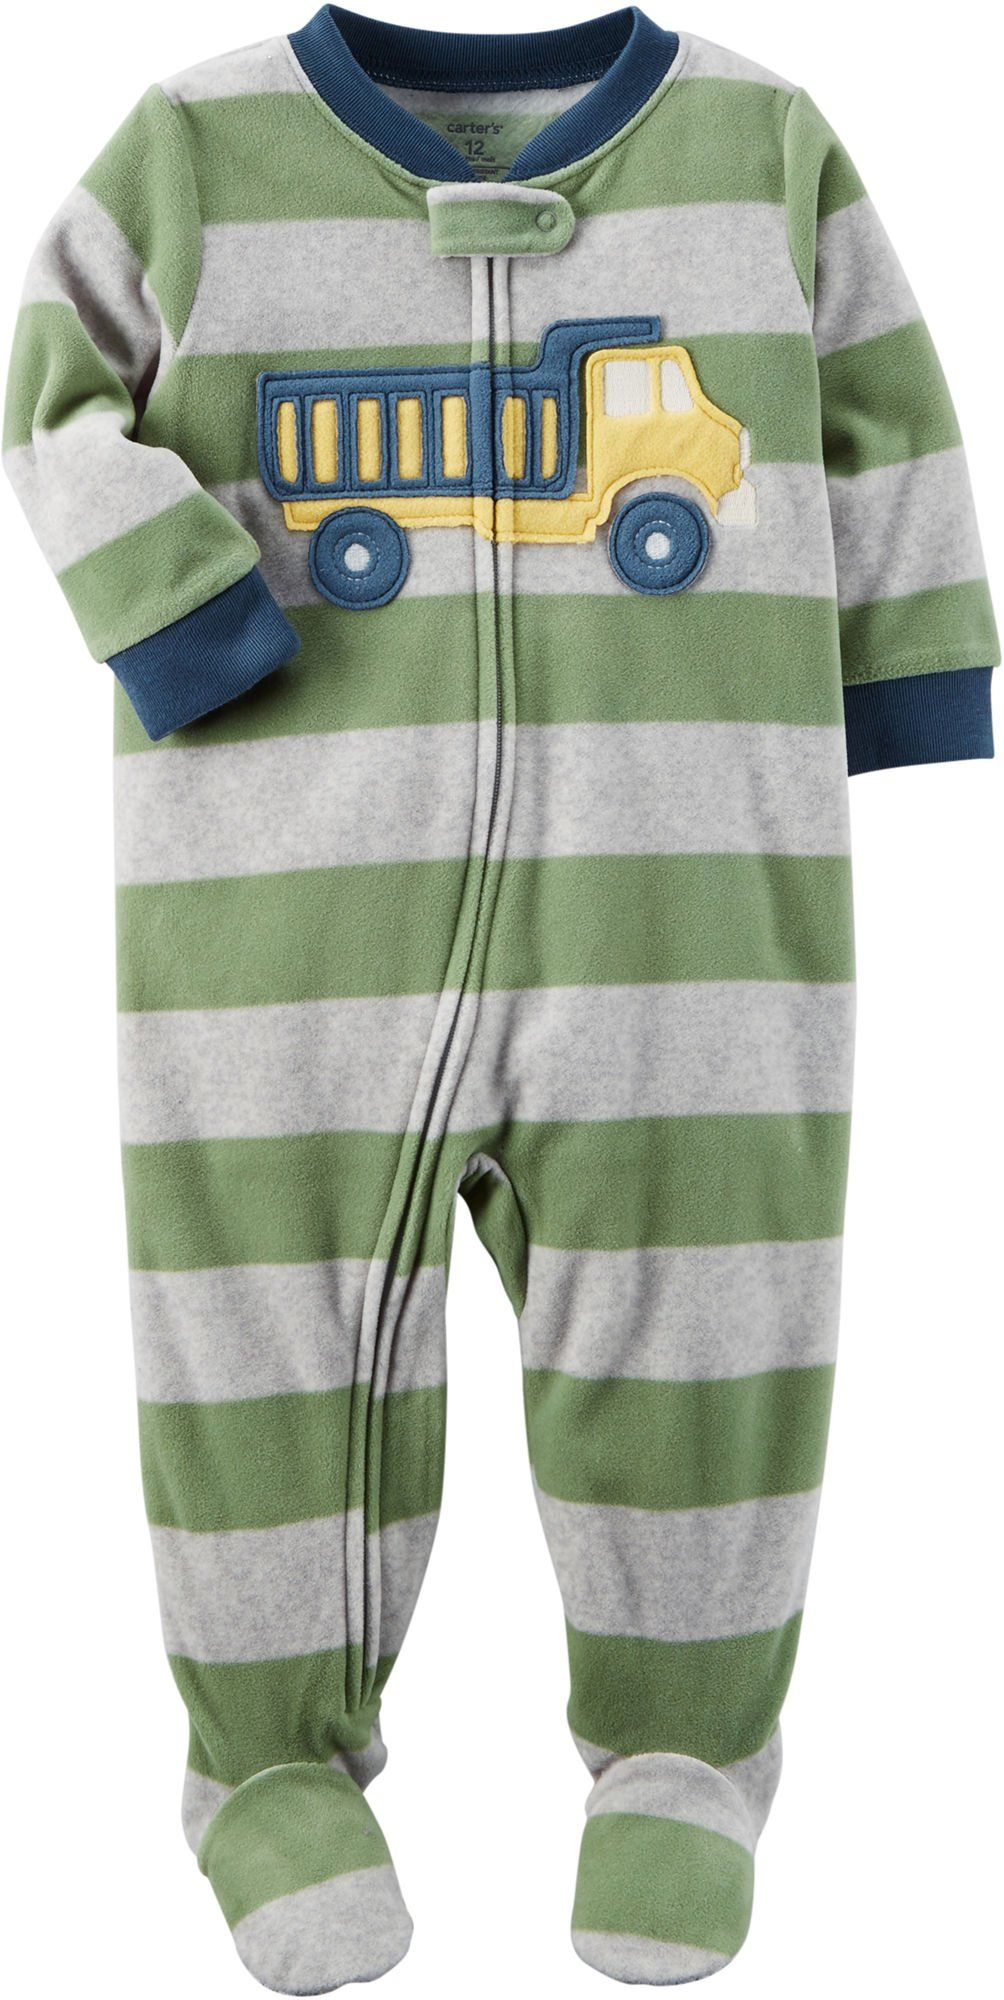 5677e02d1 Carters Boys 12M8 One Piece Striped Truck Fleece Pajamas Green 18 ...